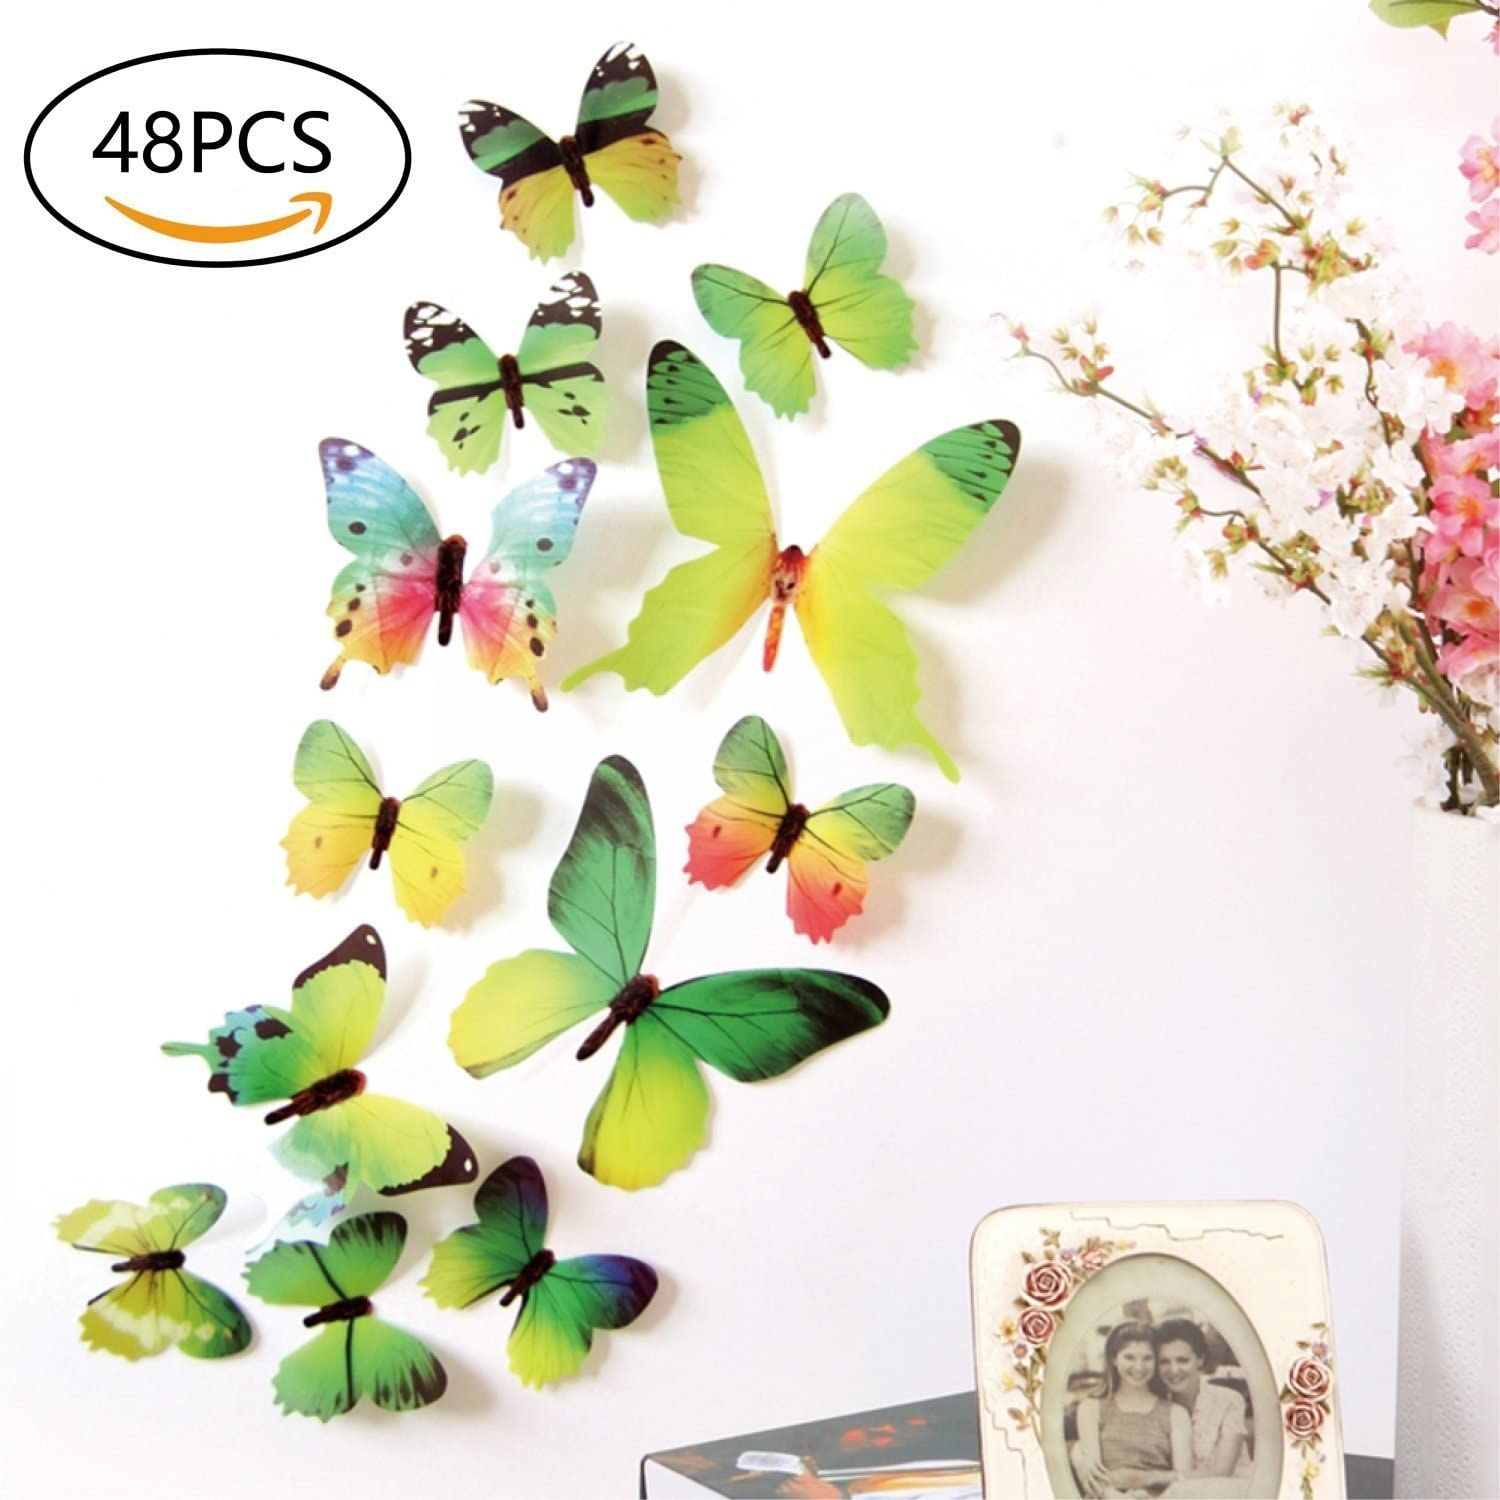 48 PCS Removable 3D Butterfly Wall Stickers Decals DIY Wall Art Decor Home Wall Decoration Sticker Mural for Kids Girls Children Bedroom Living Room Background Nursery (Green)